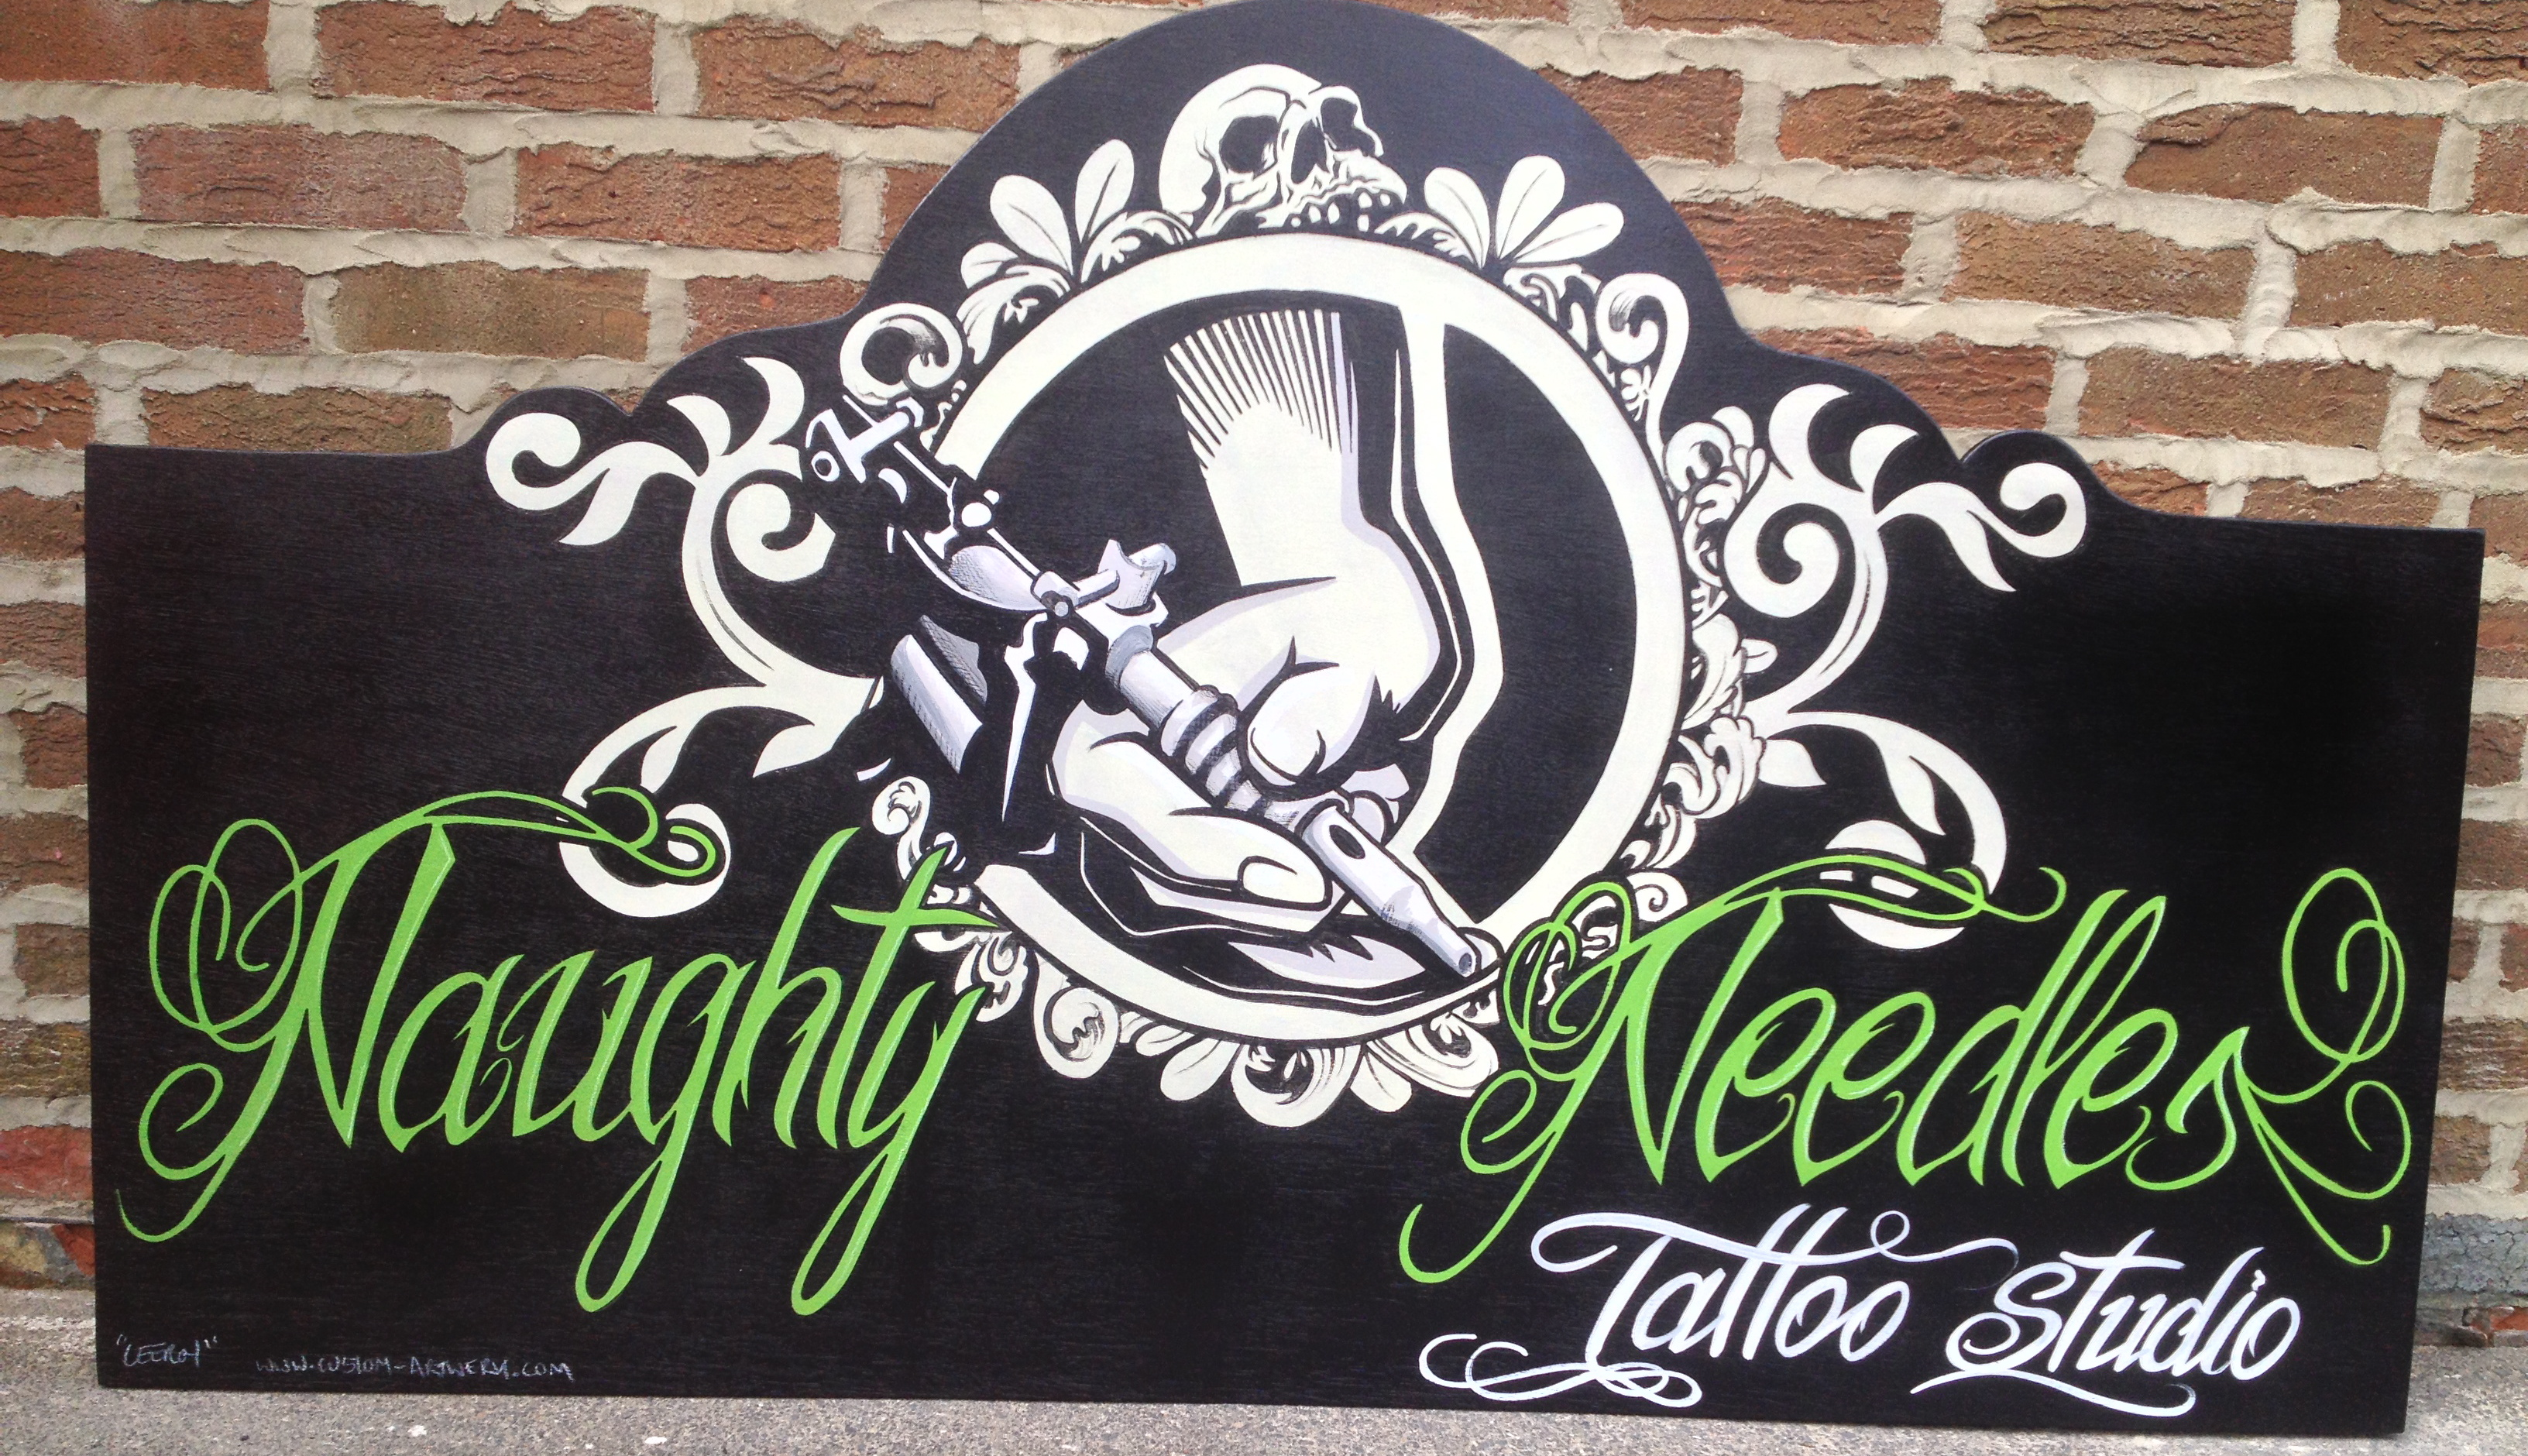 Naughty Needles Studio Sign